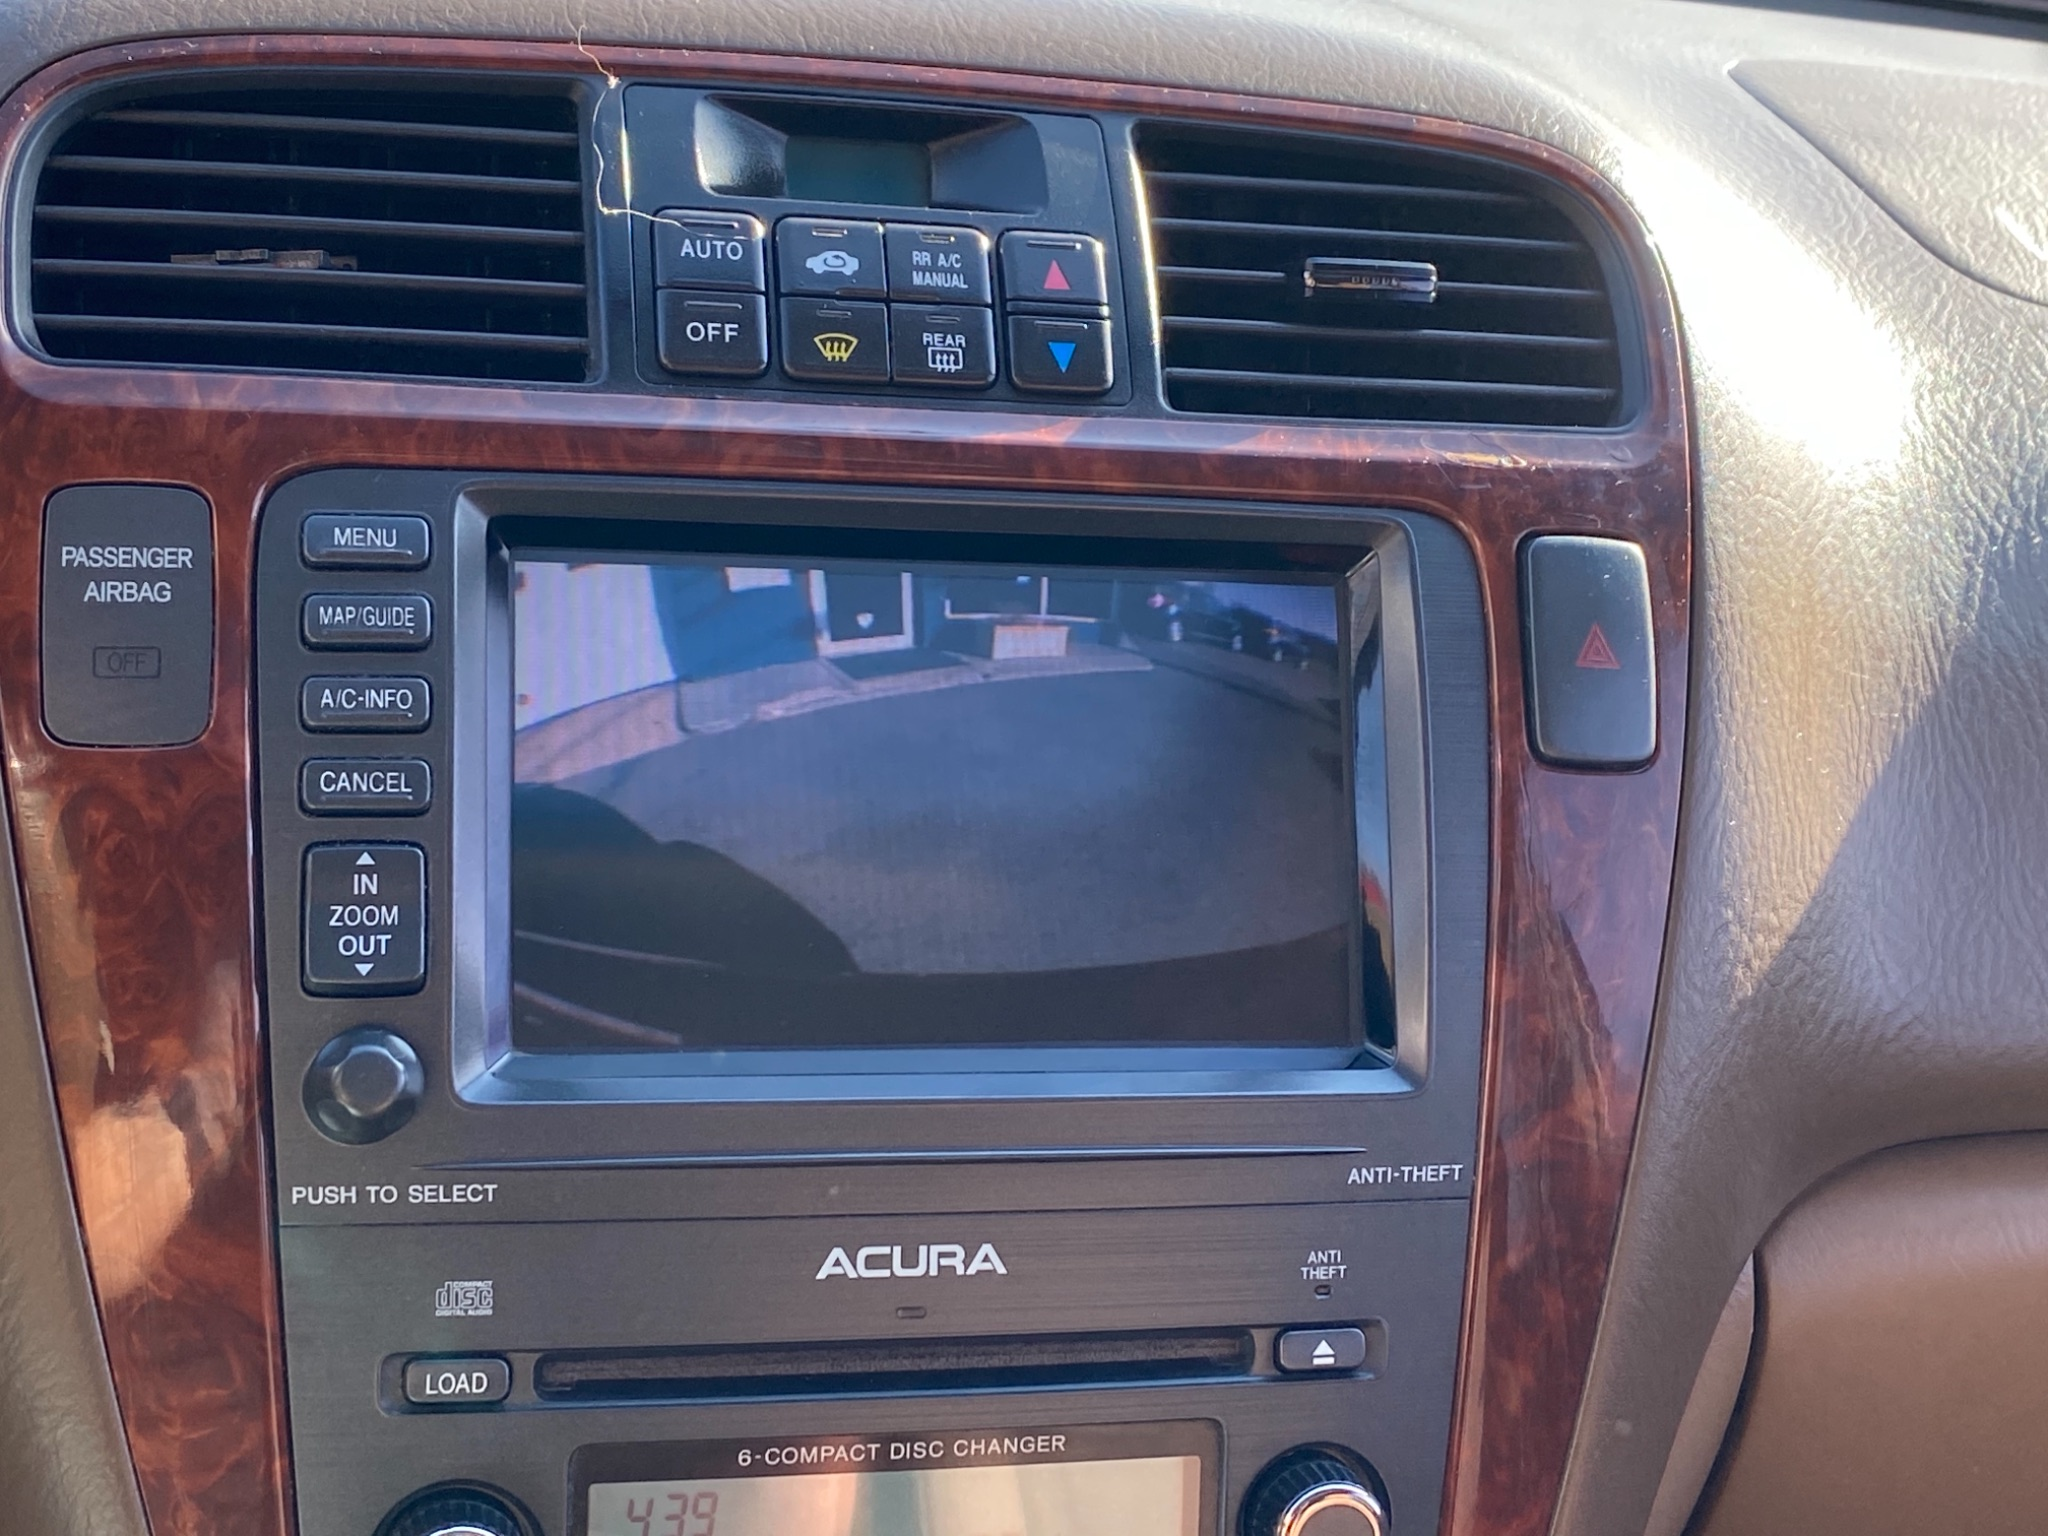 2005 Acura MDX 4WD Touring with Navigation